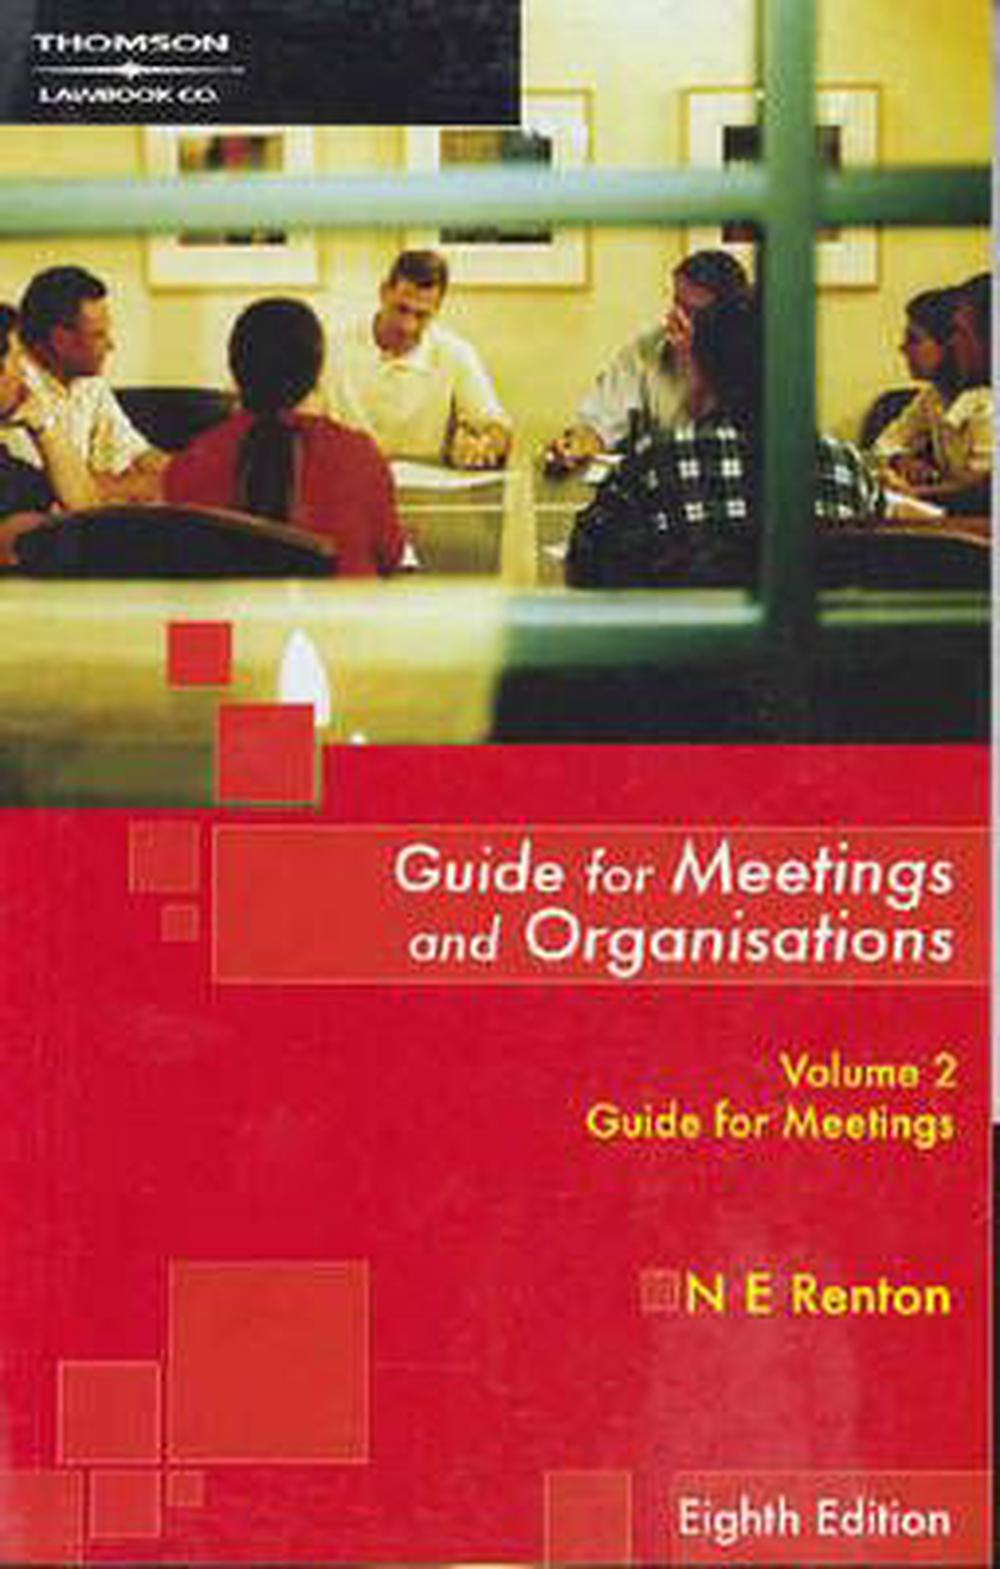 Guide for Meetings and Organisations: Guide for Meetings v. 2